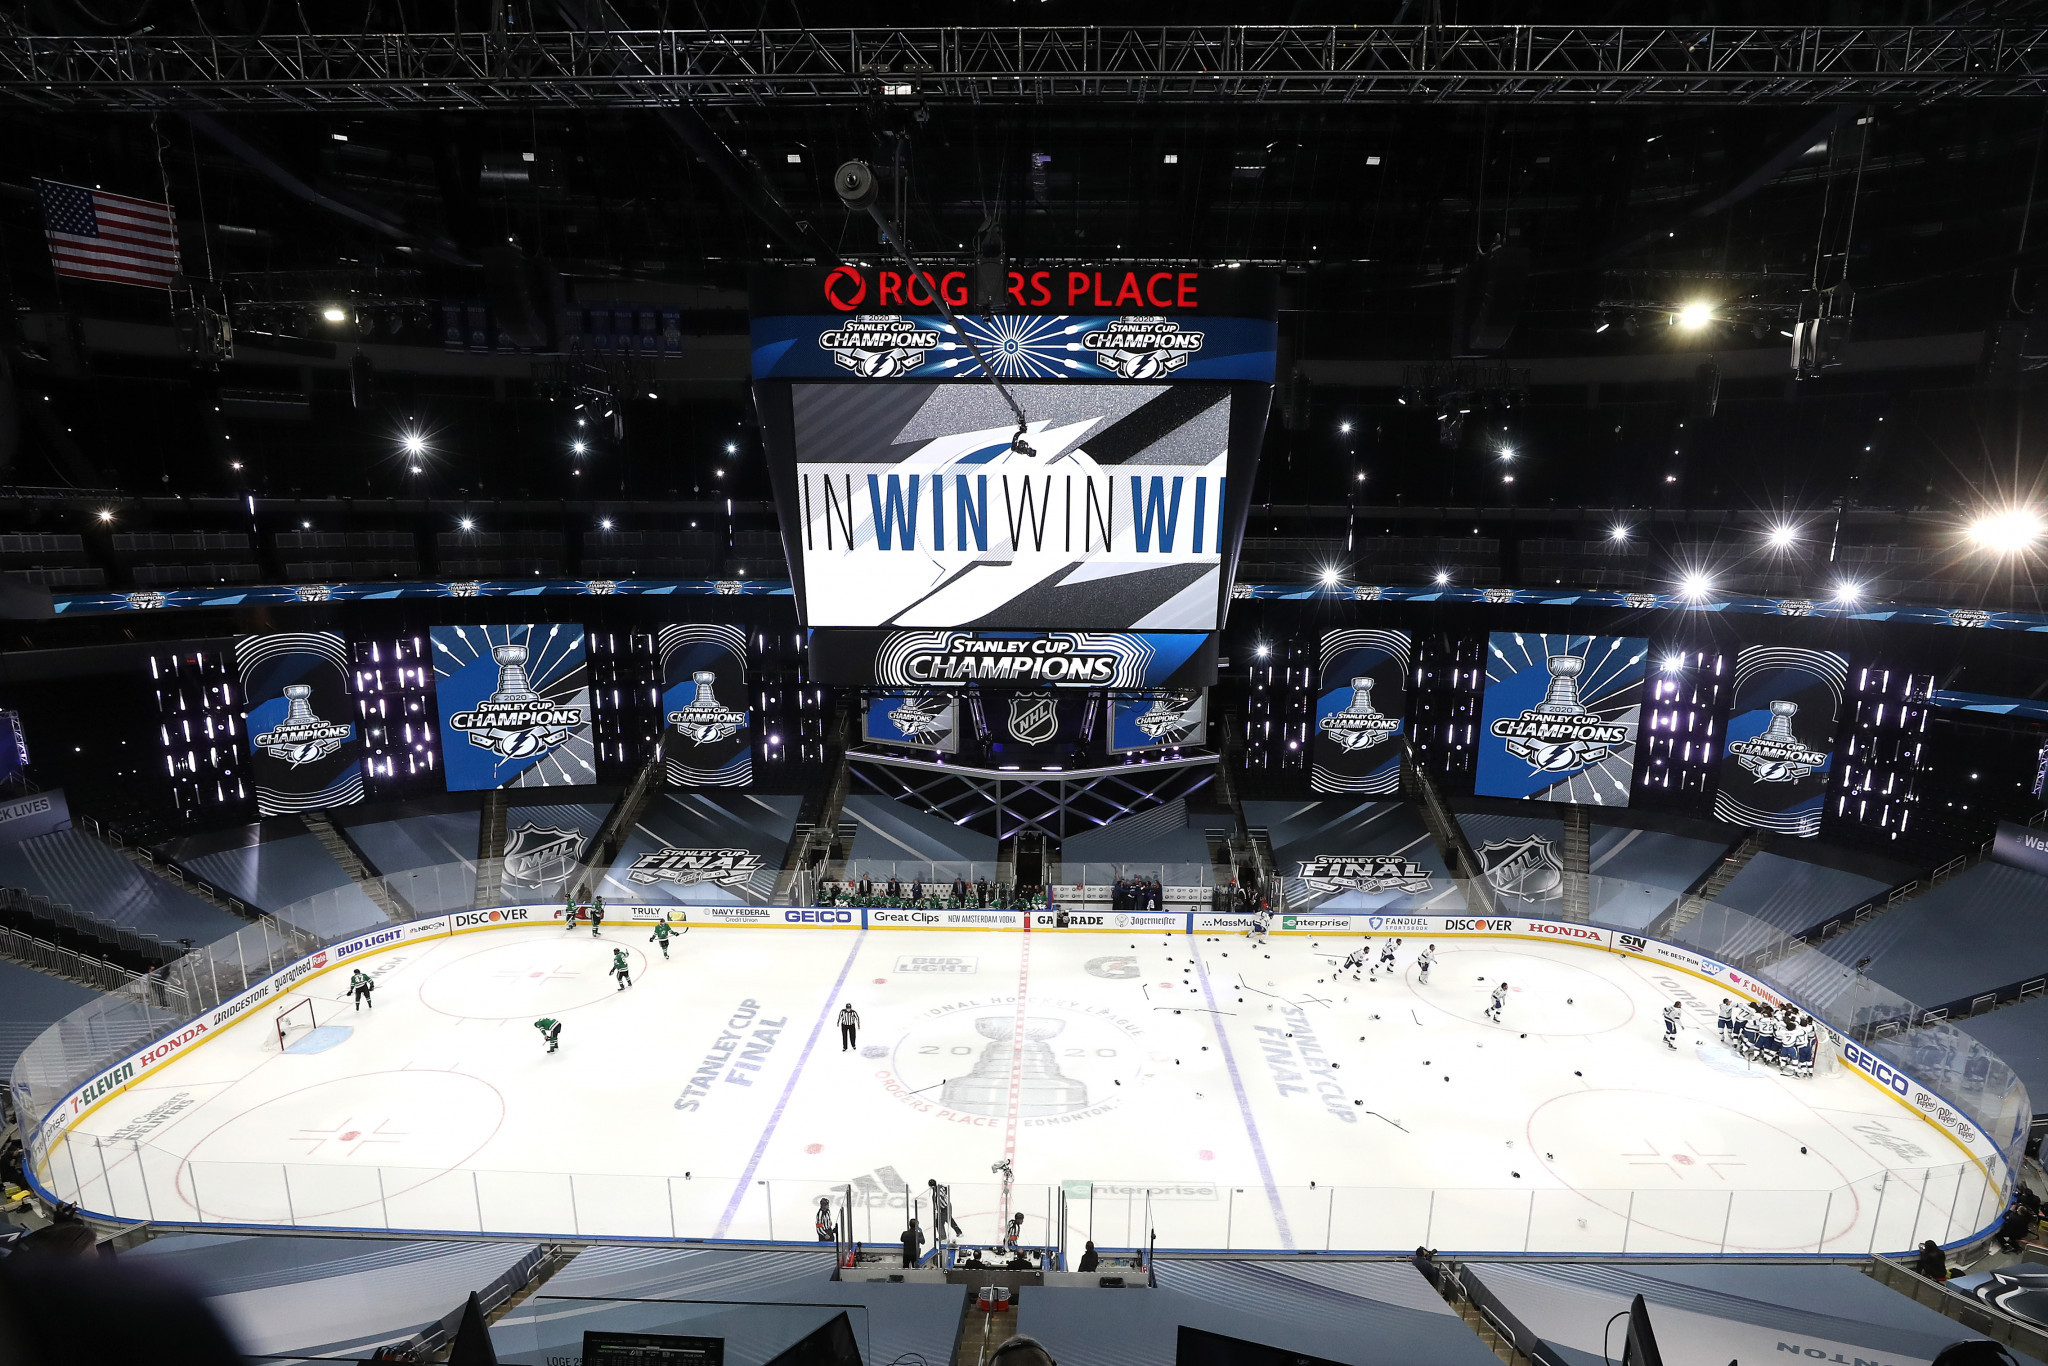 The IIHF World Junior Championships was the second major ice hockey event Edmonton had staged using the bubble format having also hosted last year's Stanley Cup ©Getty Images